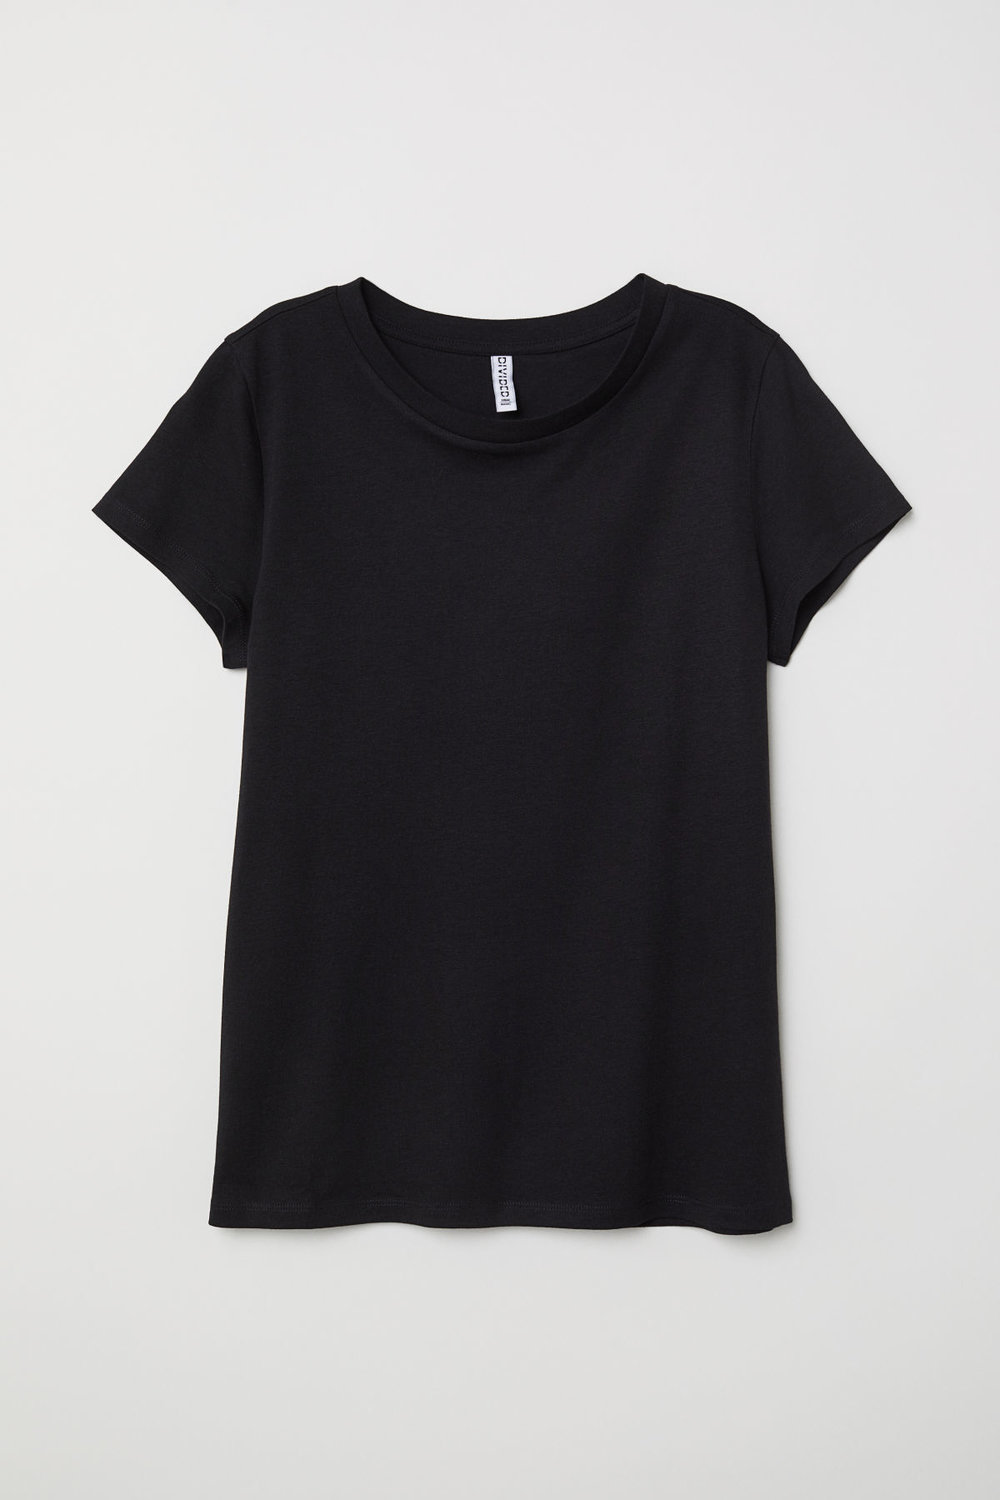 HM Basic Tee - Spring Wardrobe Essentials